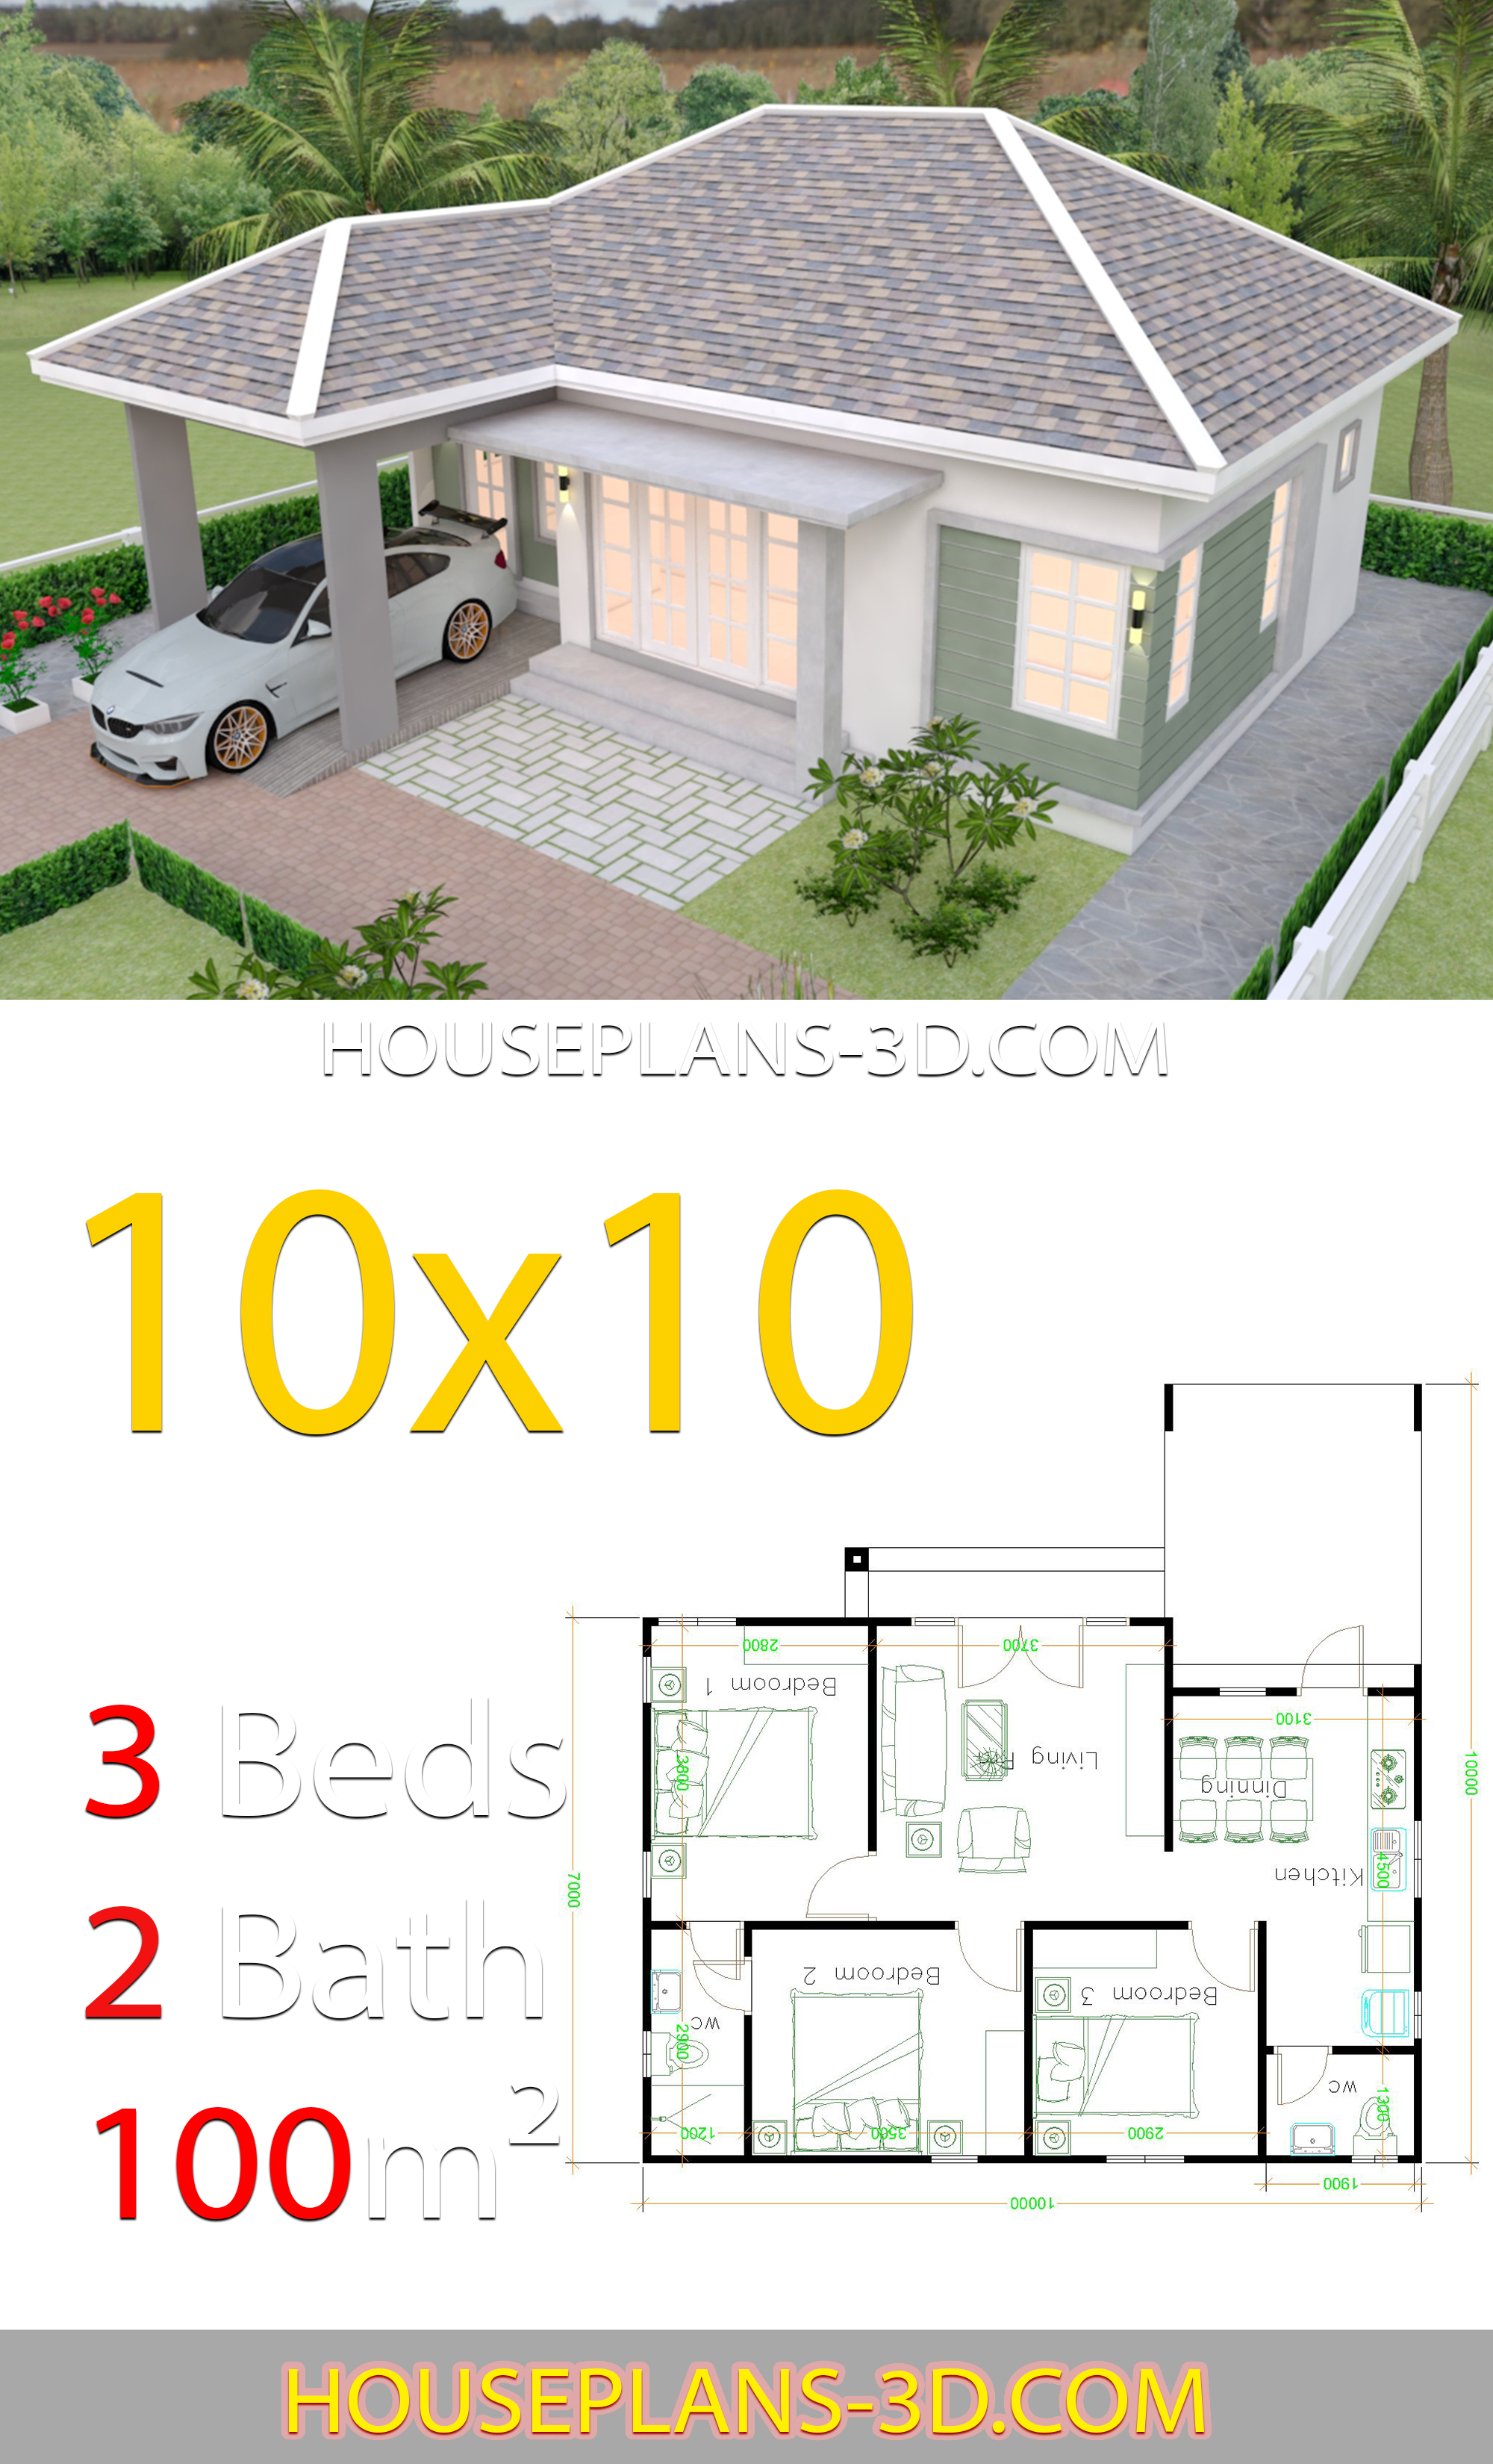 10x10 Room Layout: Interior House Design Plans 10x10 With 3 Bedrooms Full